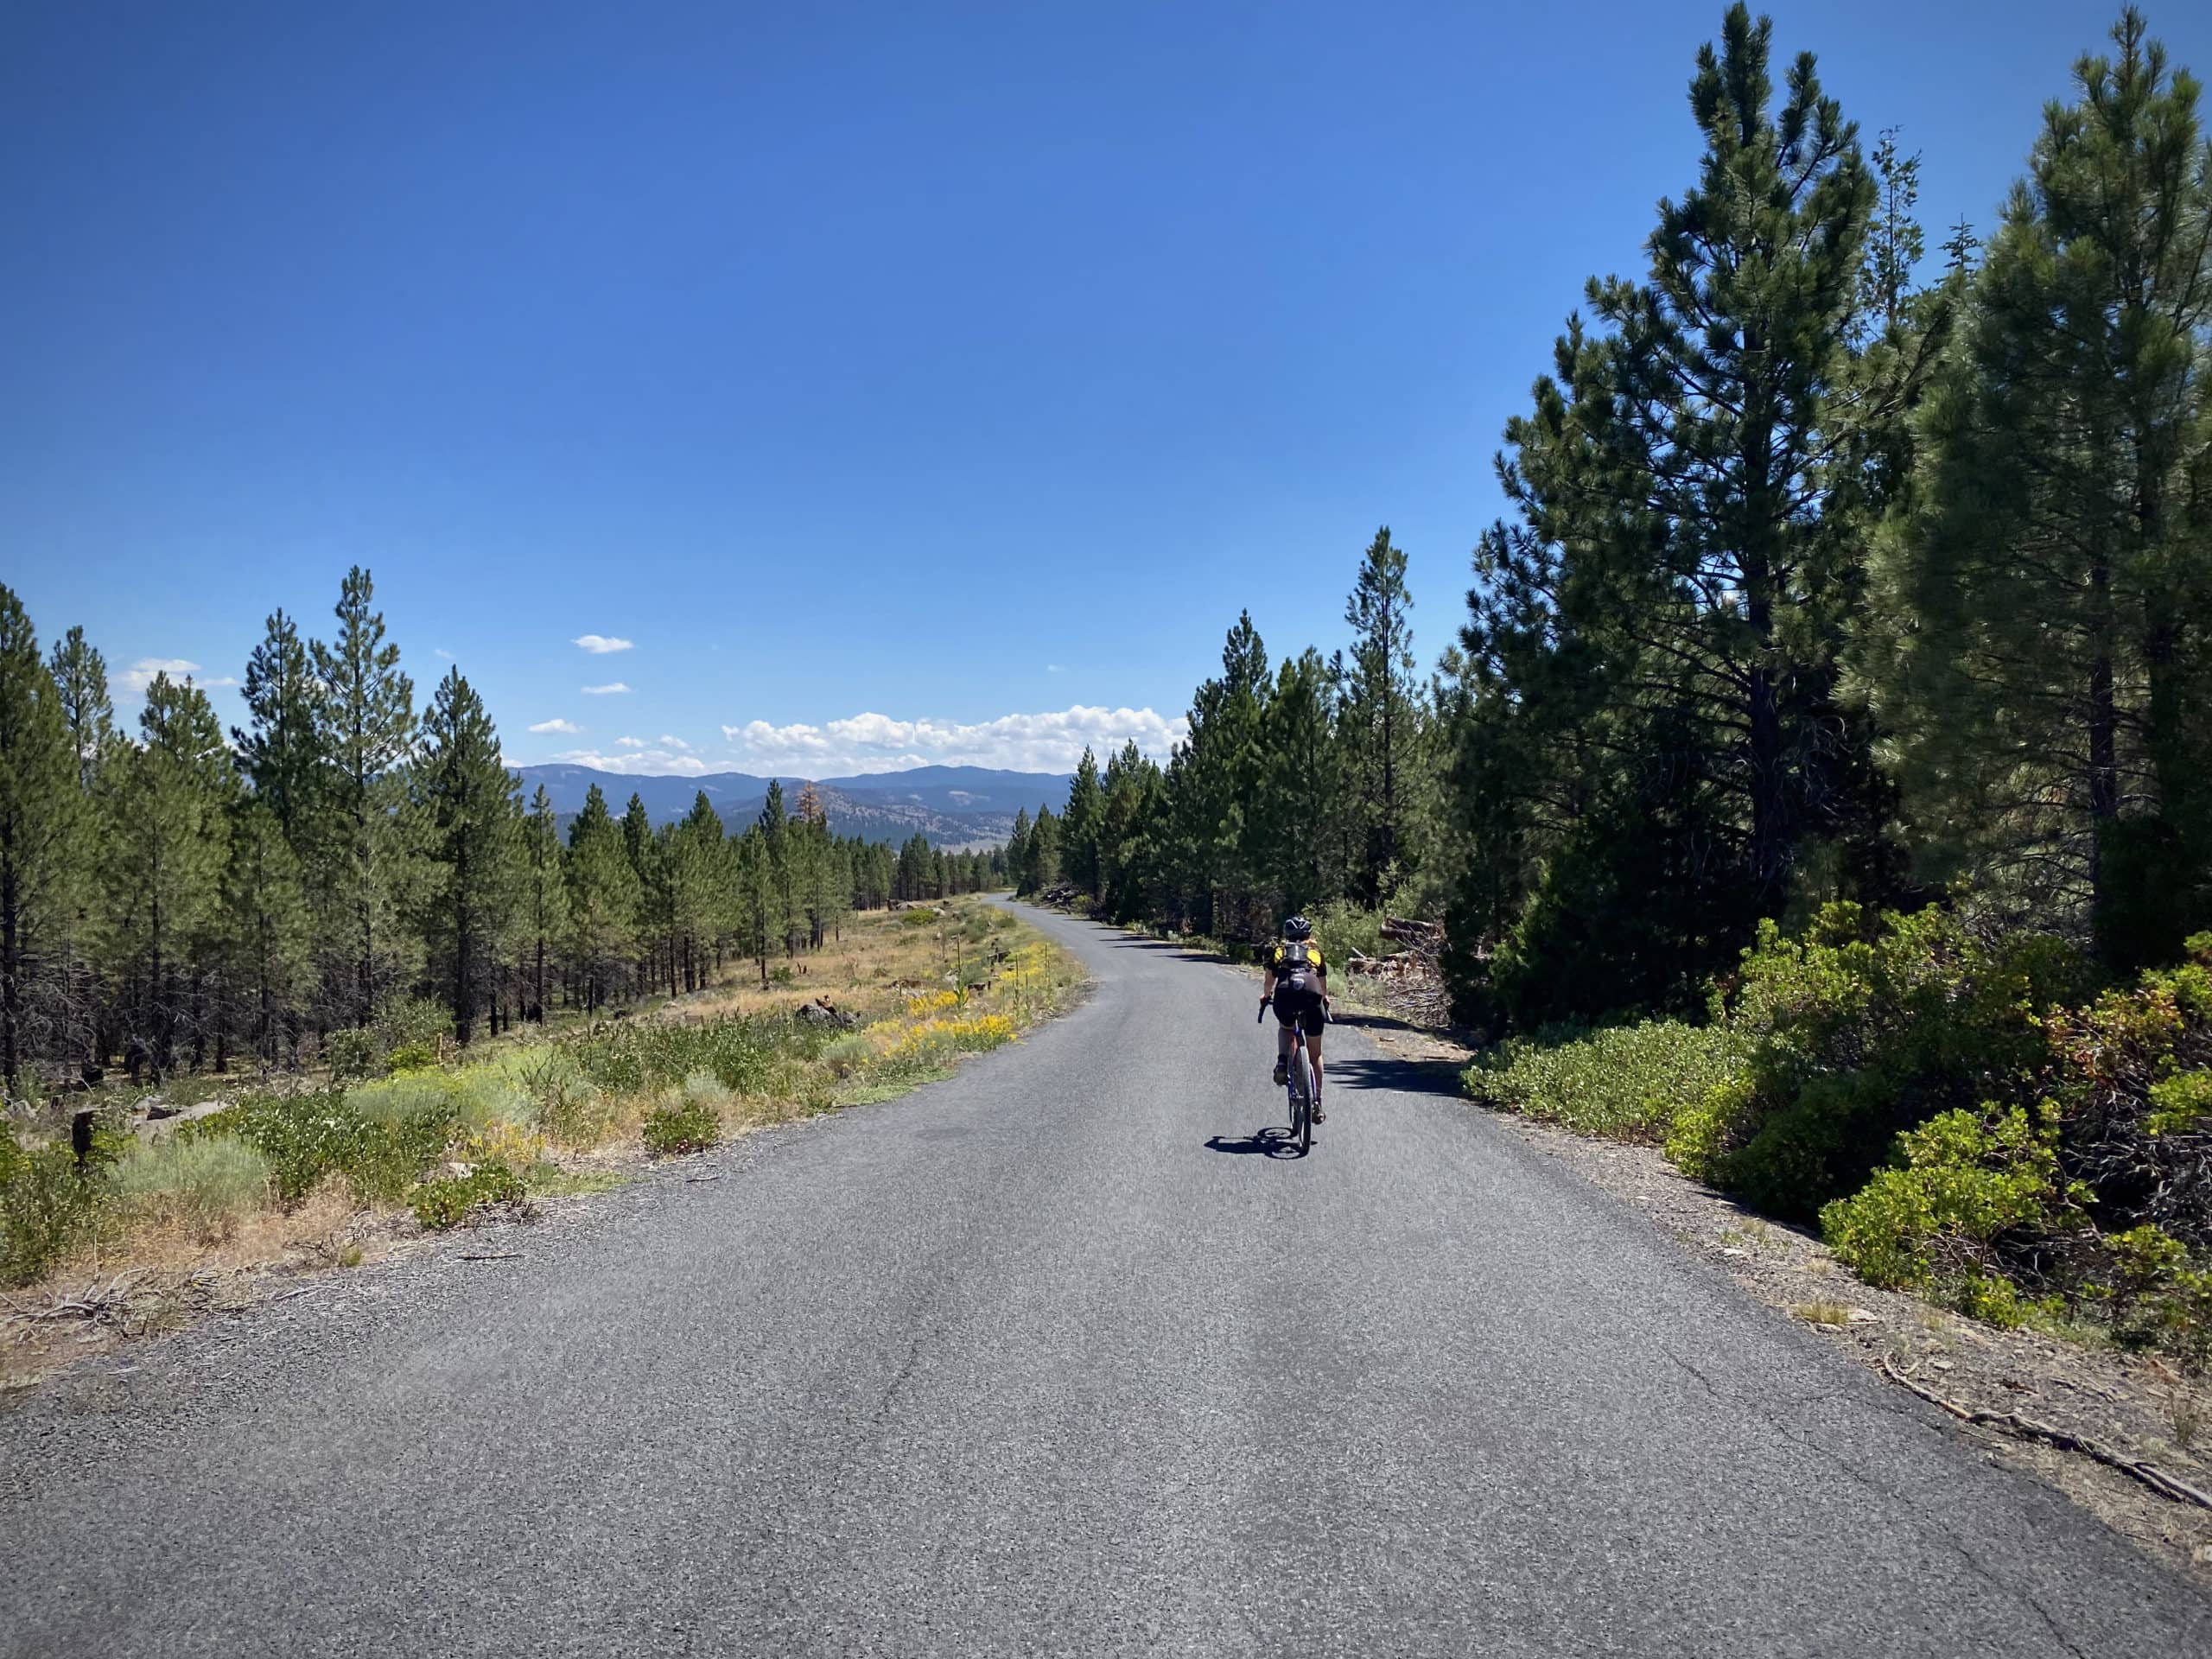 Woman cyclist on paved road NF 28 in the Fremont National Forest.